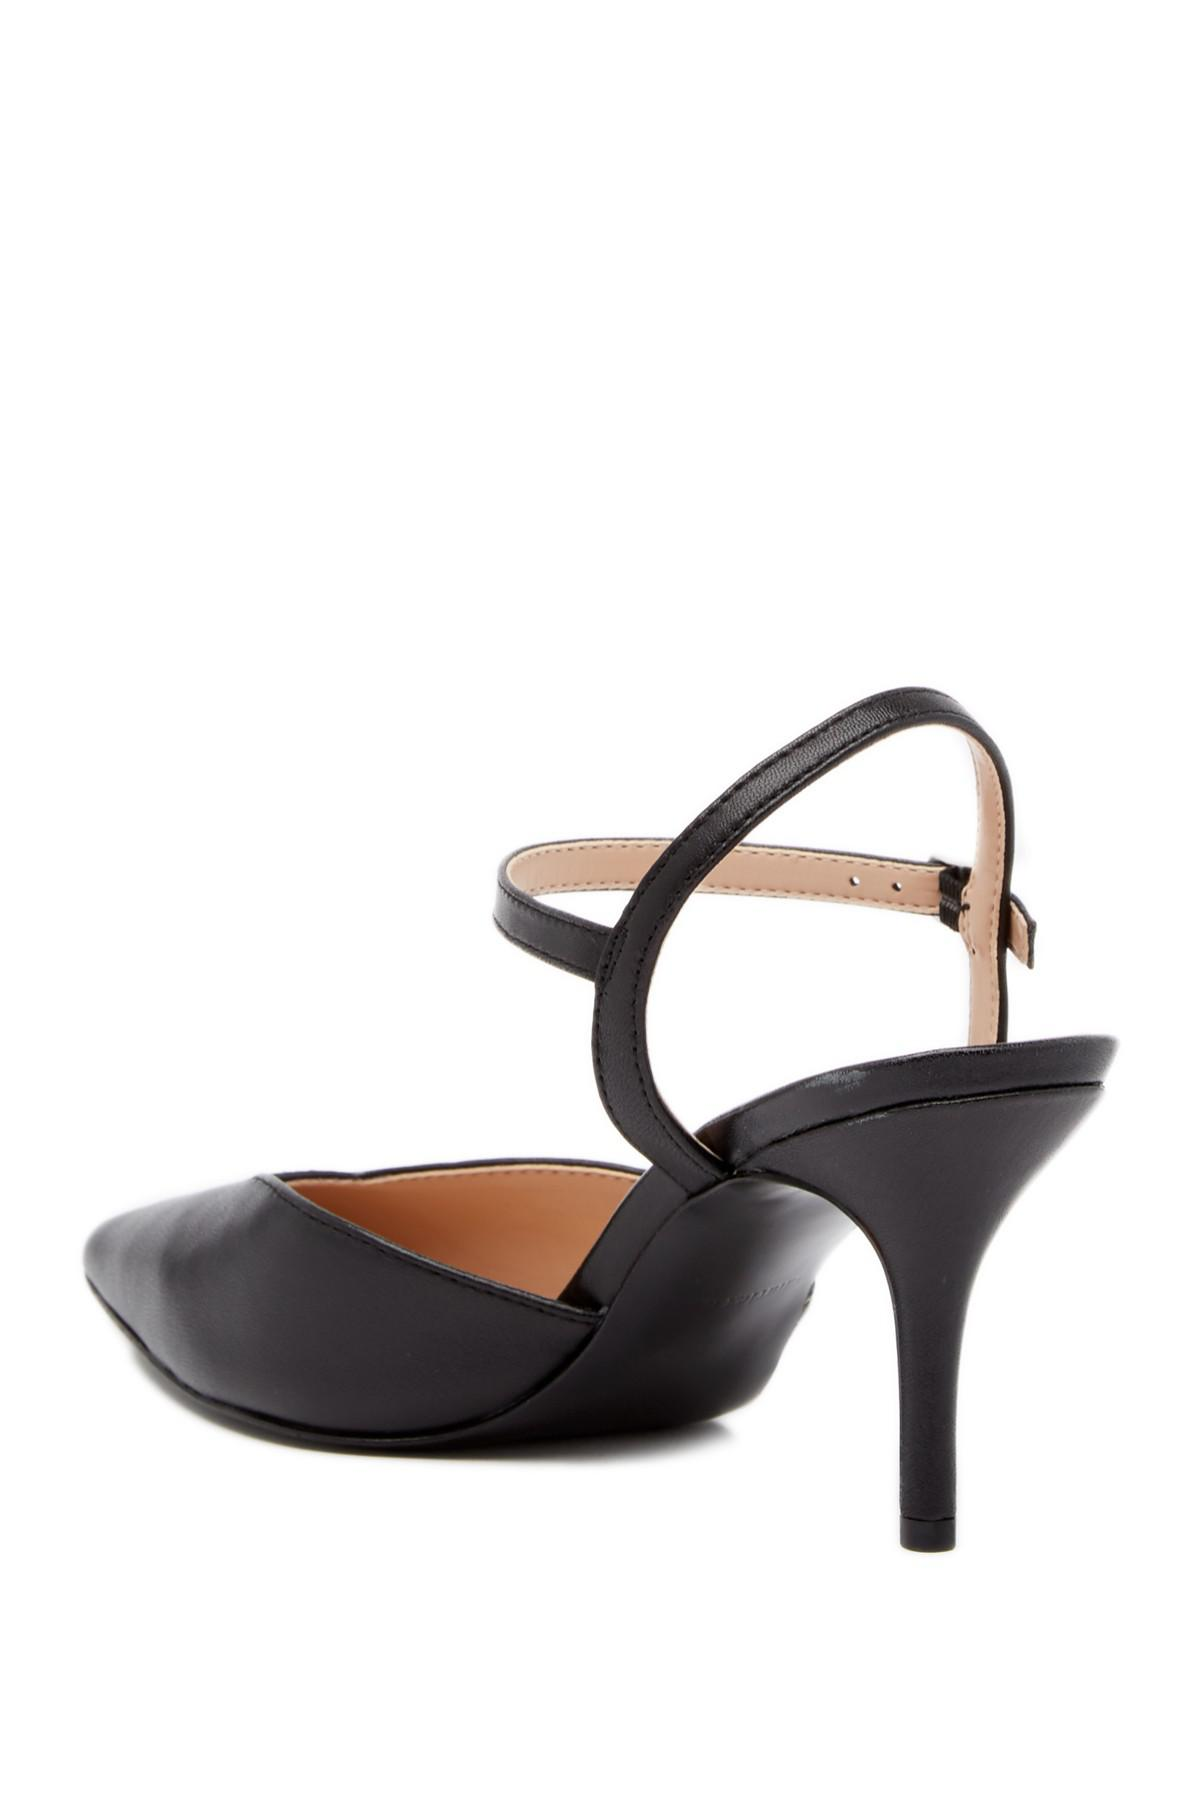 Charles David Arden Ankle Strap Heeled Pump O8Zx1e